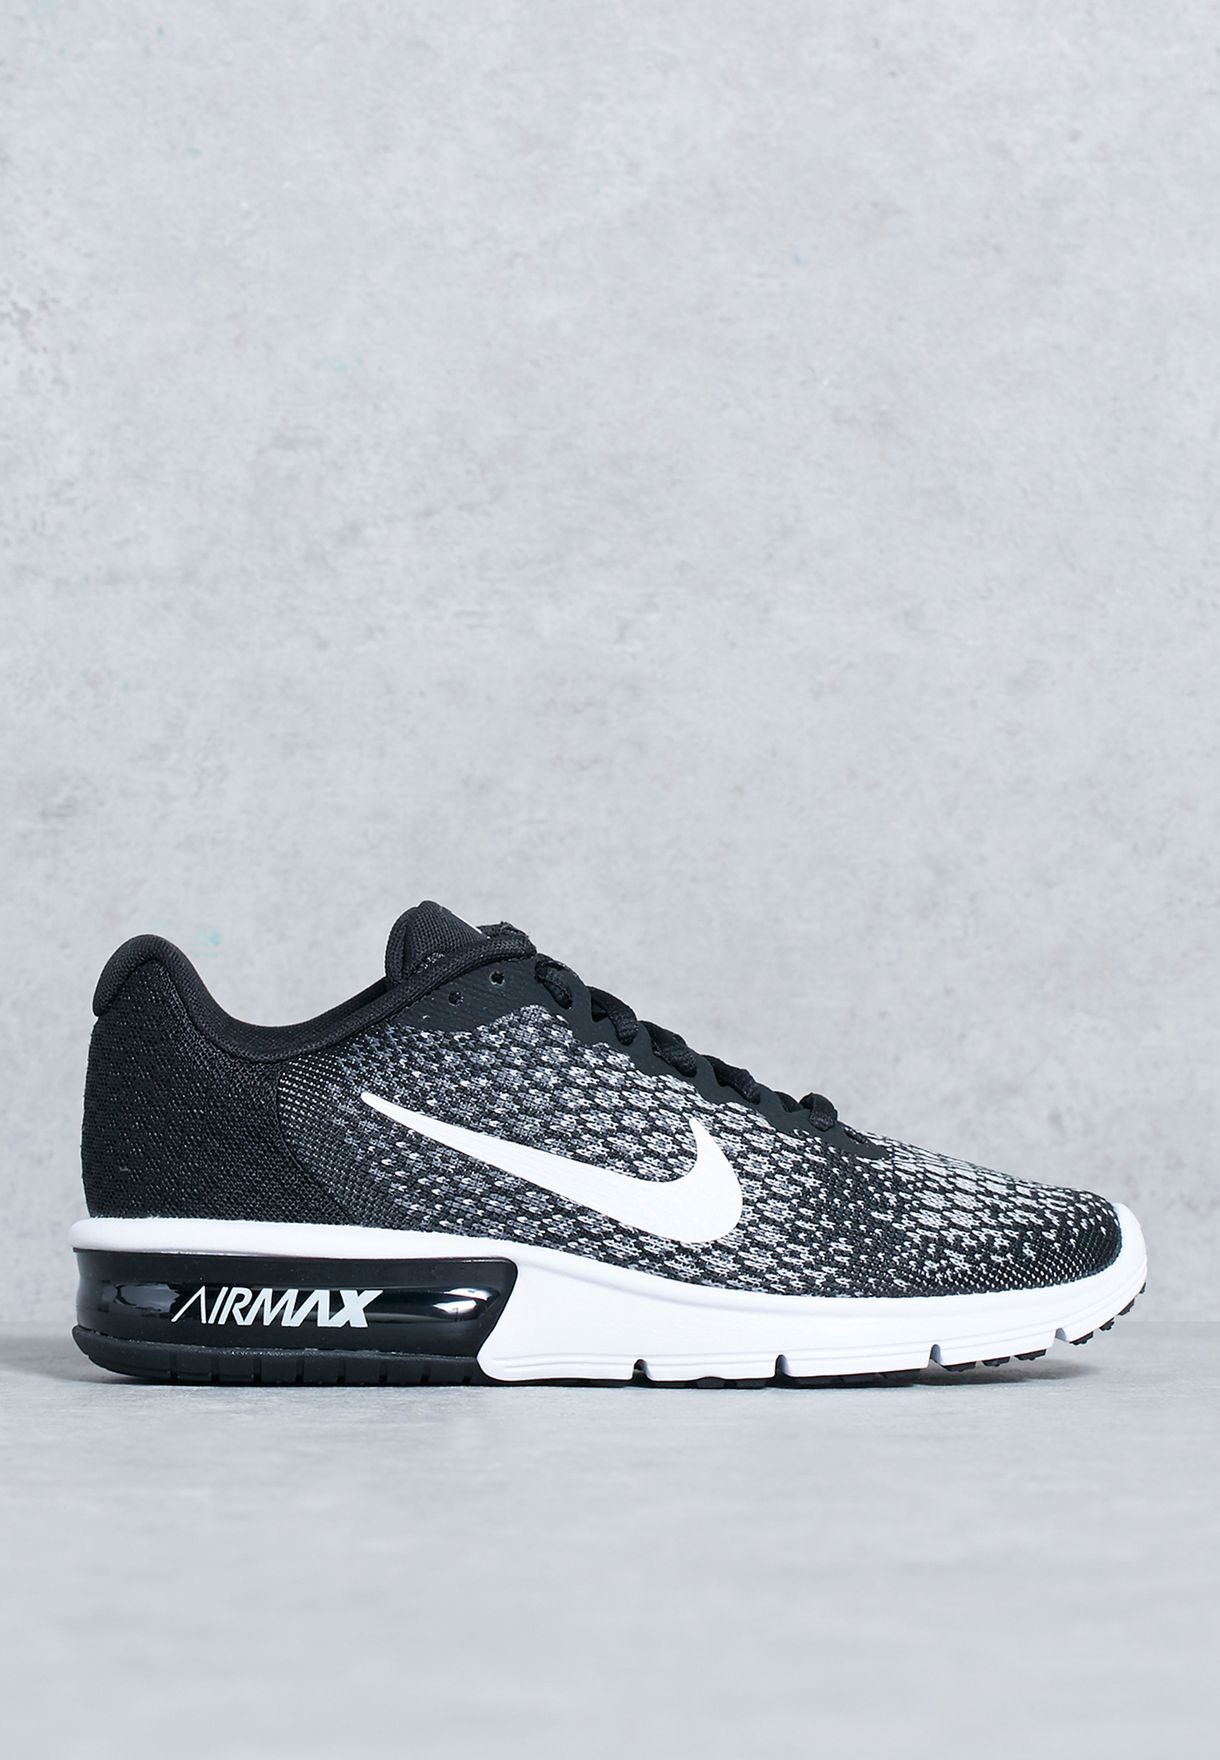 Nike Air Shoes Air Max Sequent Print London Store Exclusive